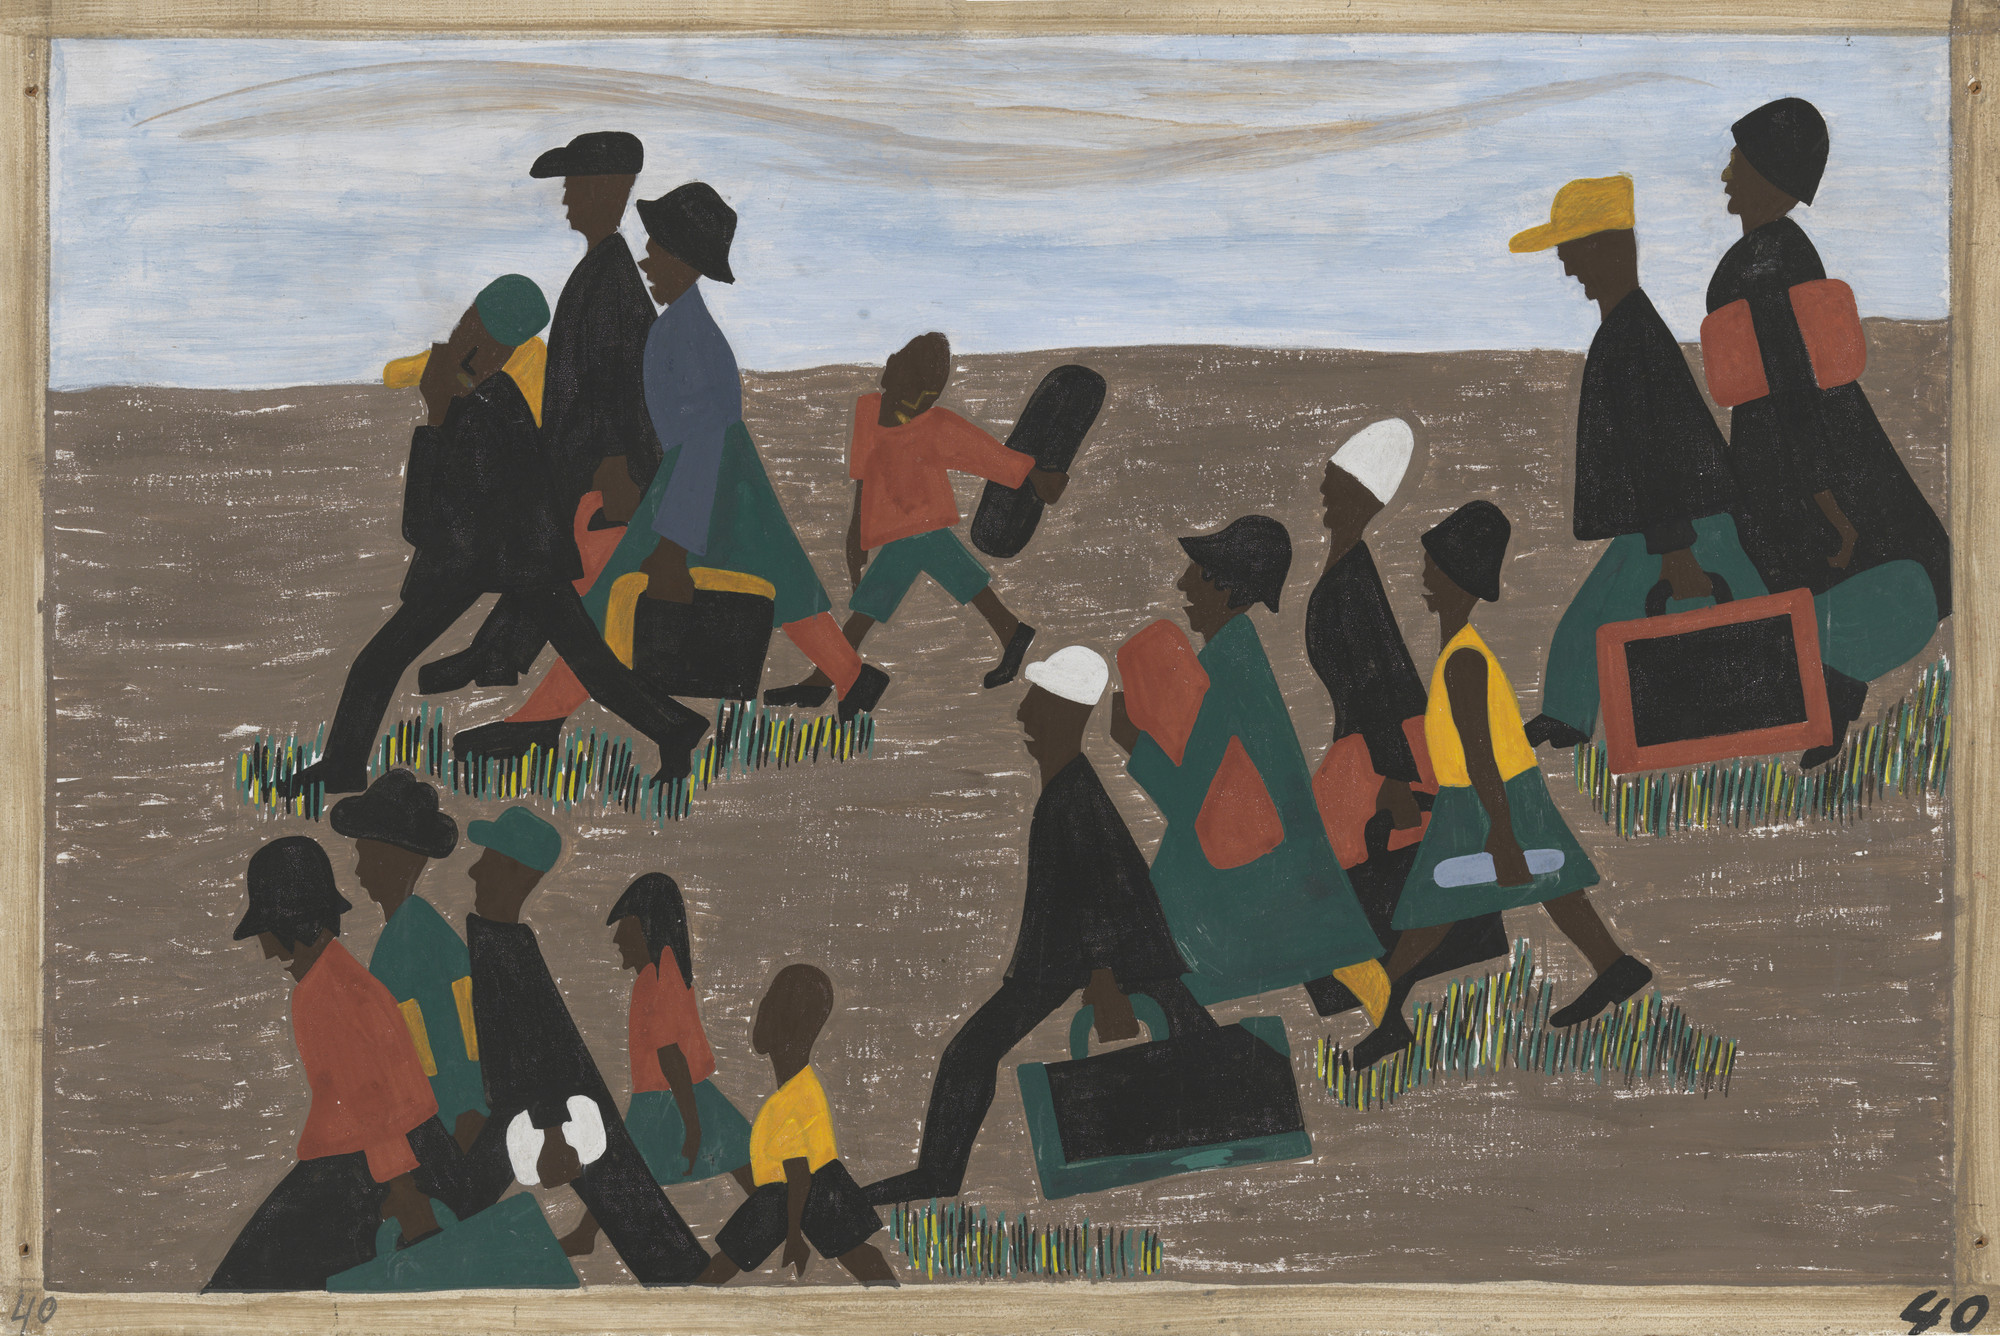 Jacob Lawrence. The migrants arrived in great numbers (panel 40 of 60). 1940–41. Casein tempera on hardboard, 12 × 18″ (30.5 × 45.7 cm). Gift of Mrs. David M. Levy. © 2016 Jacob Lawrence / Artists Rights Society (ARS), New York